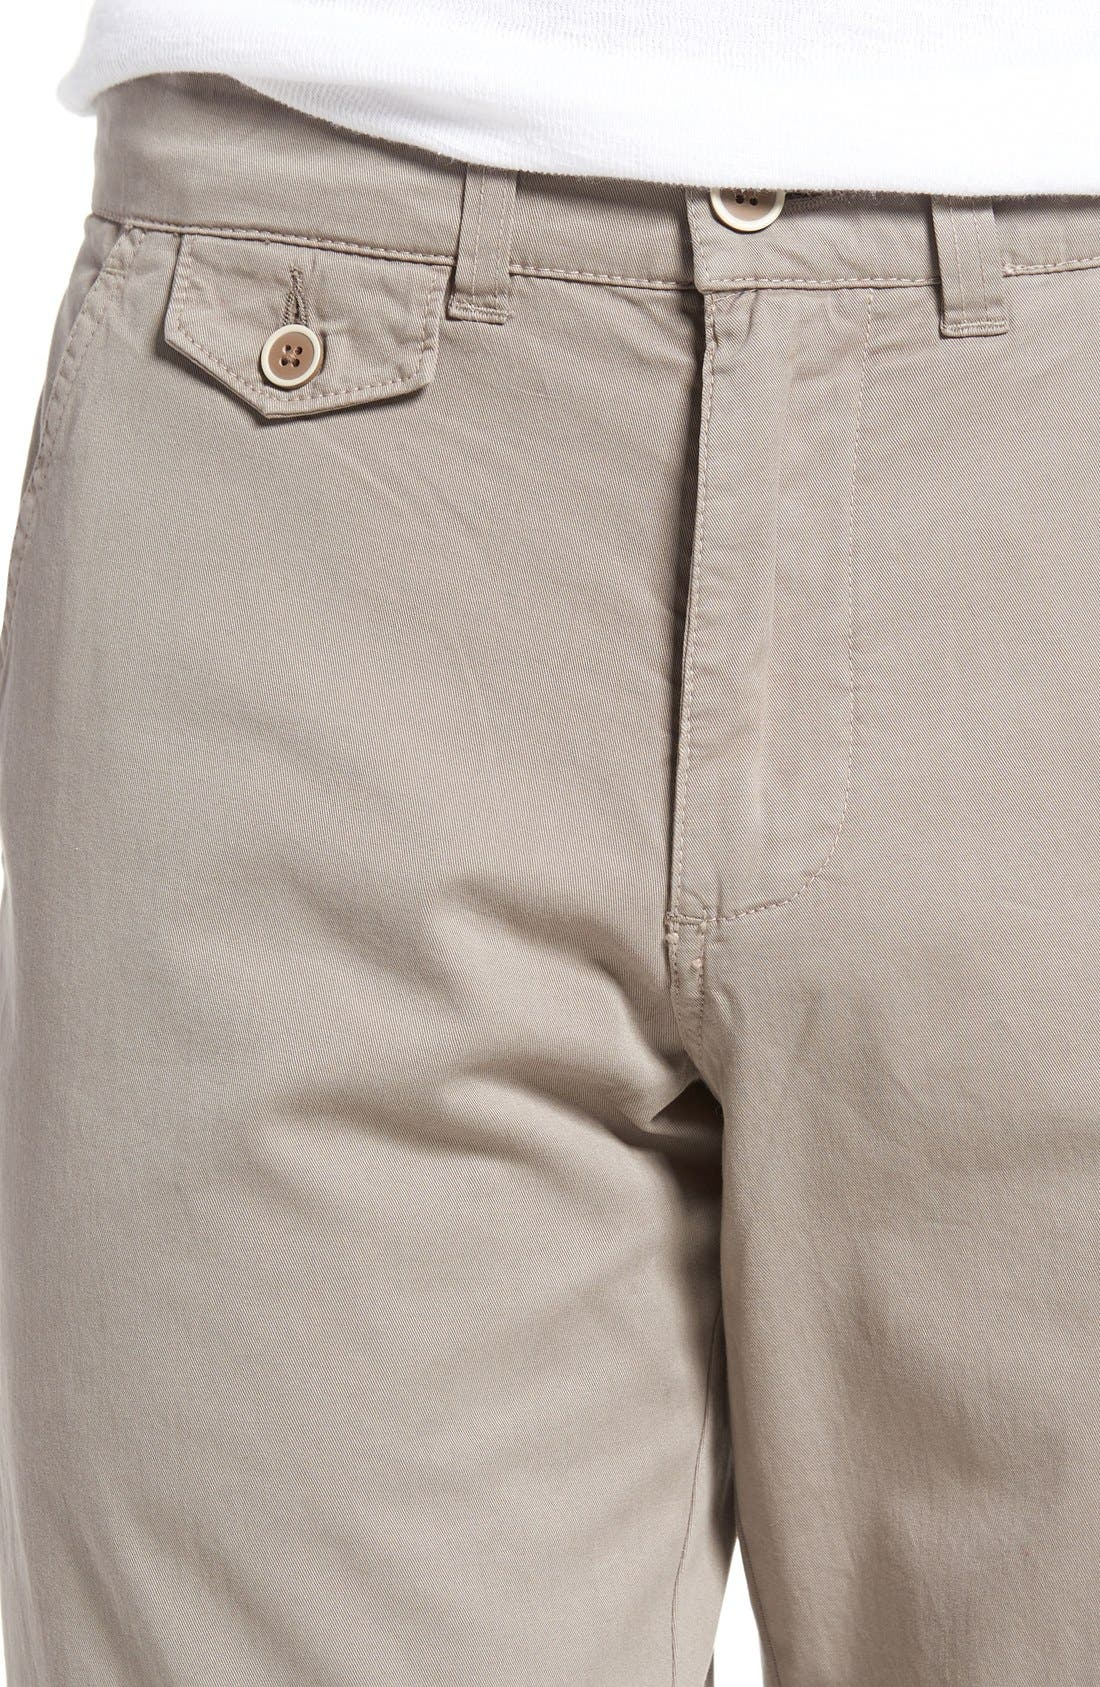 Sunny Modern Fit Stretch Twill Chinos,                             Alternate thumbnail 4, color,                             DUSTY SILVER